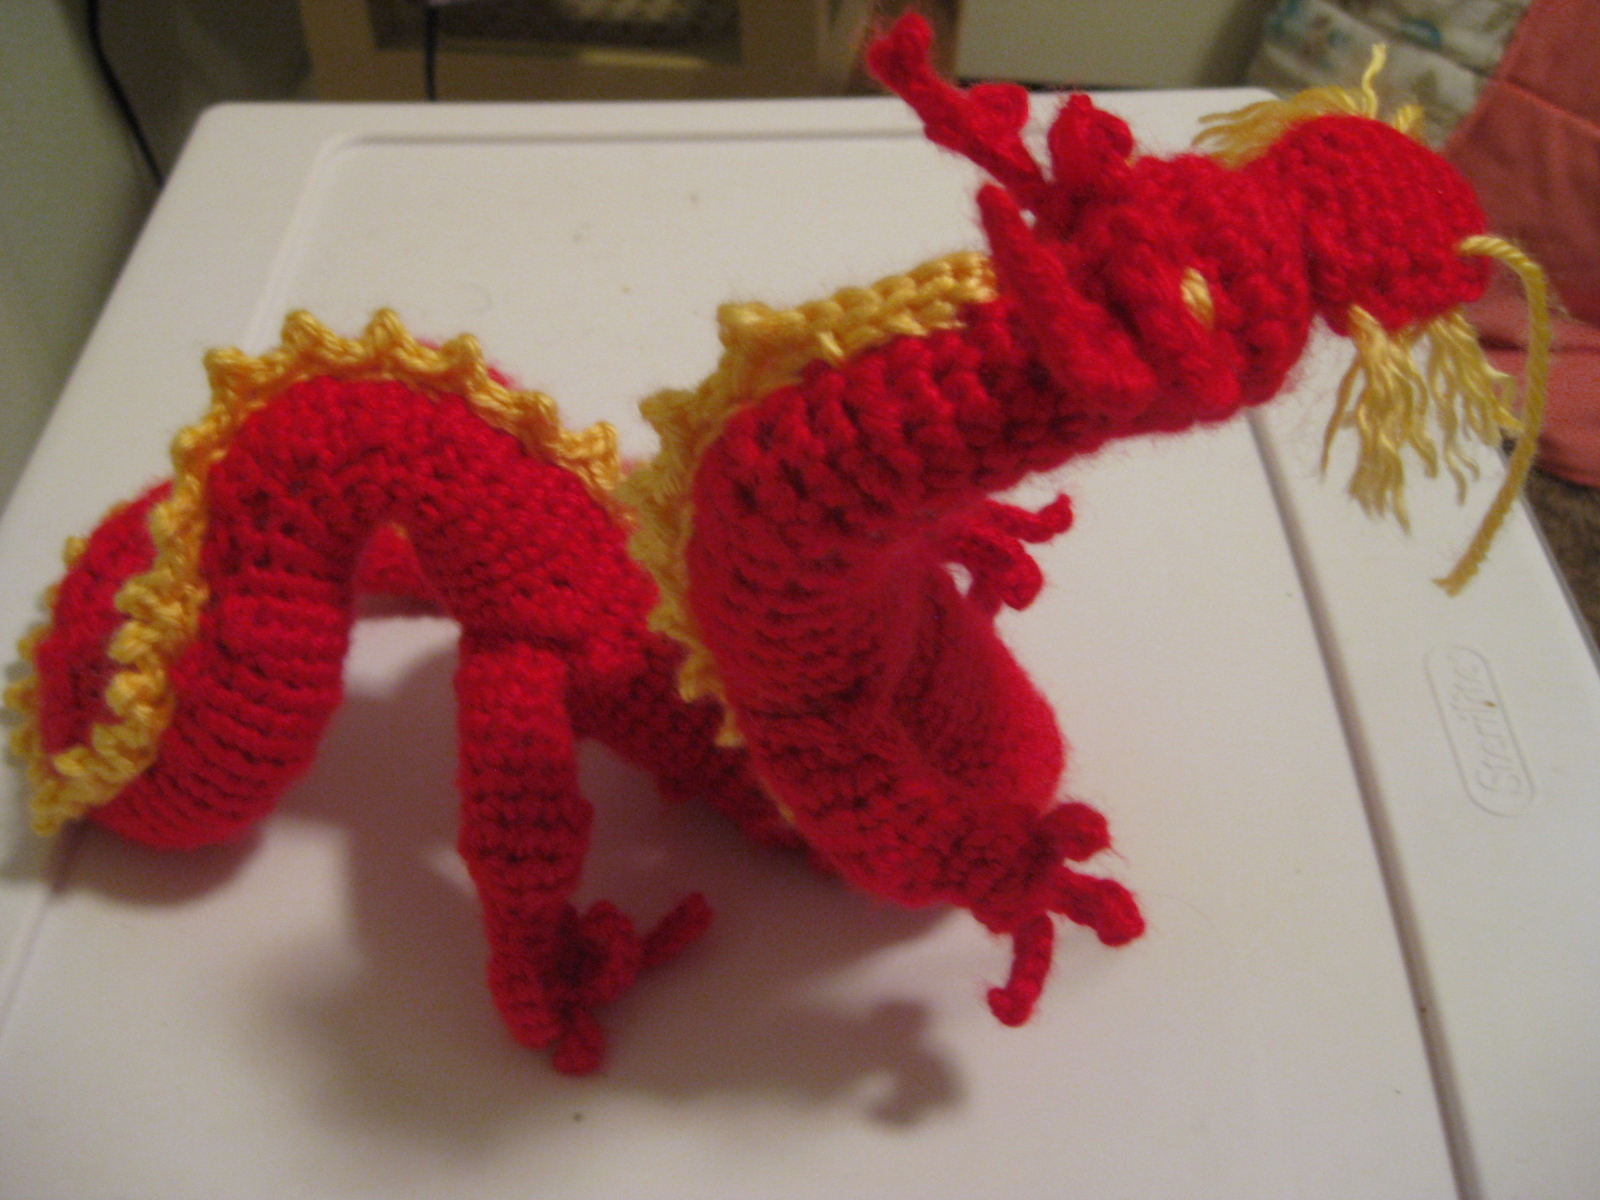 Asian Dragon Amigurumi Pattern Free : Live. Love. Laugh.: Chinese New Year Asian Dragon